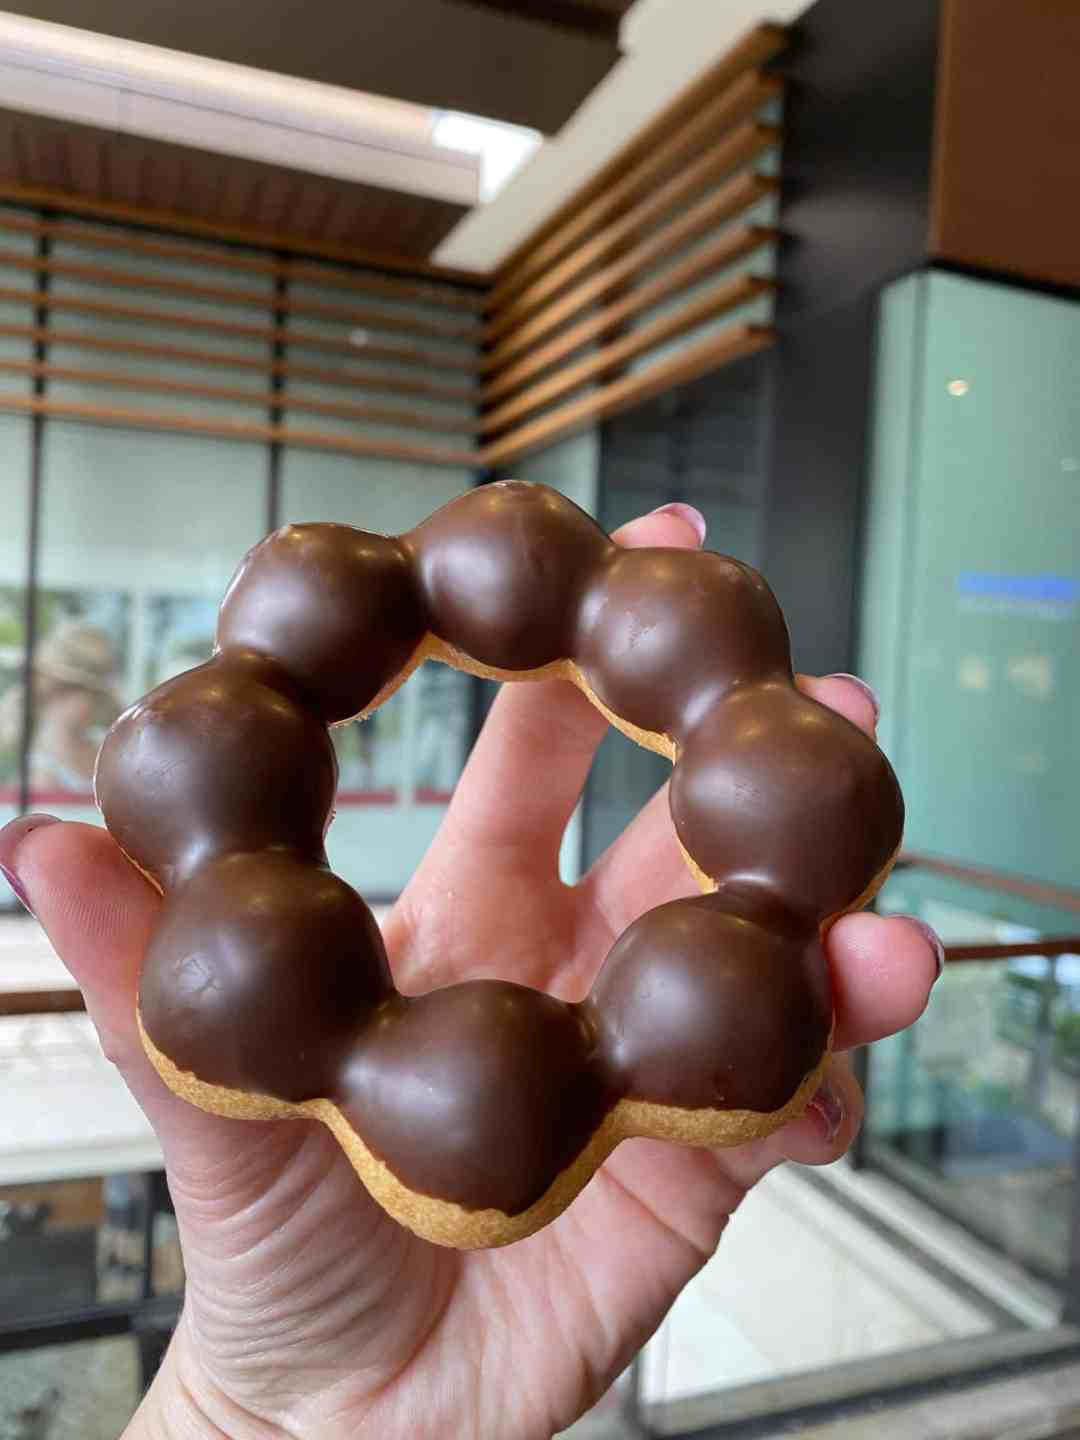 Chocolate covered ring shaped mochi doughnut